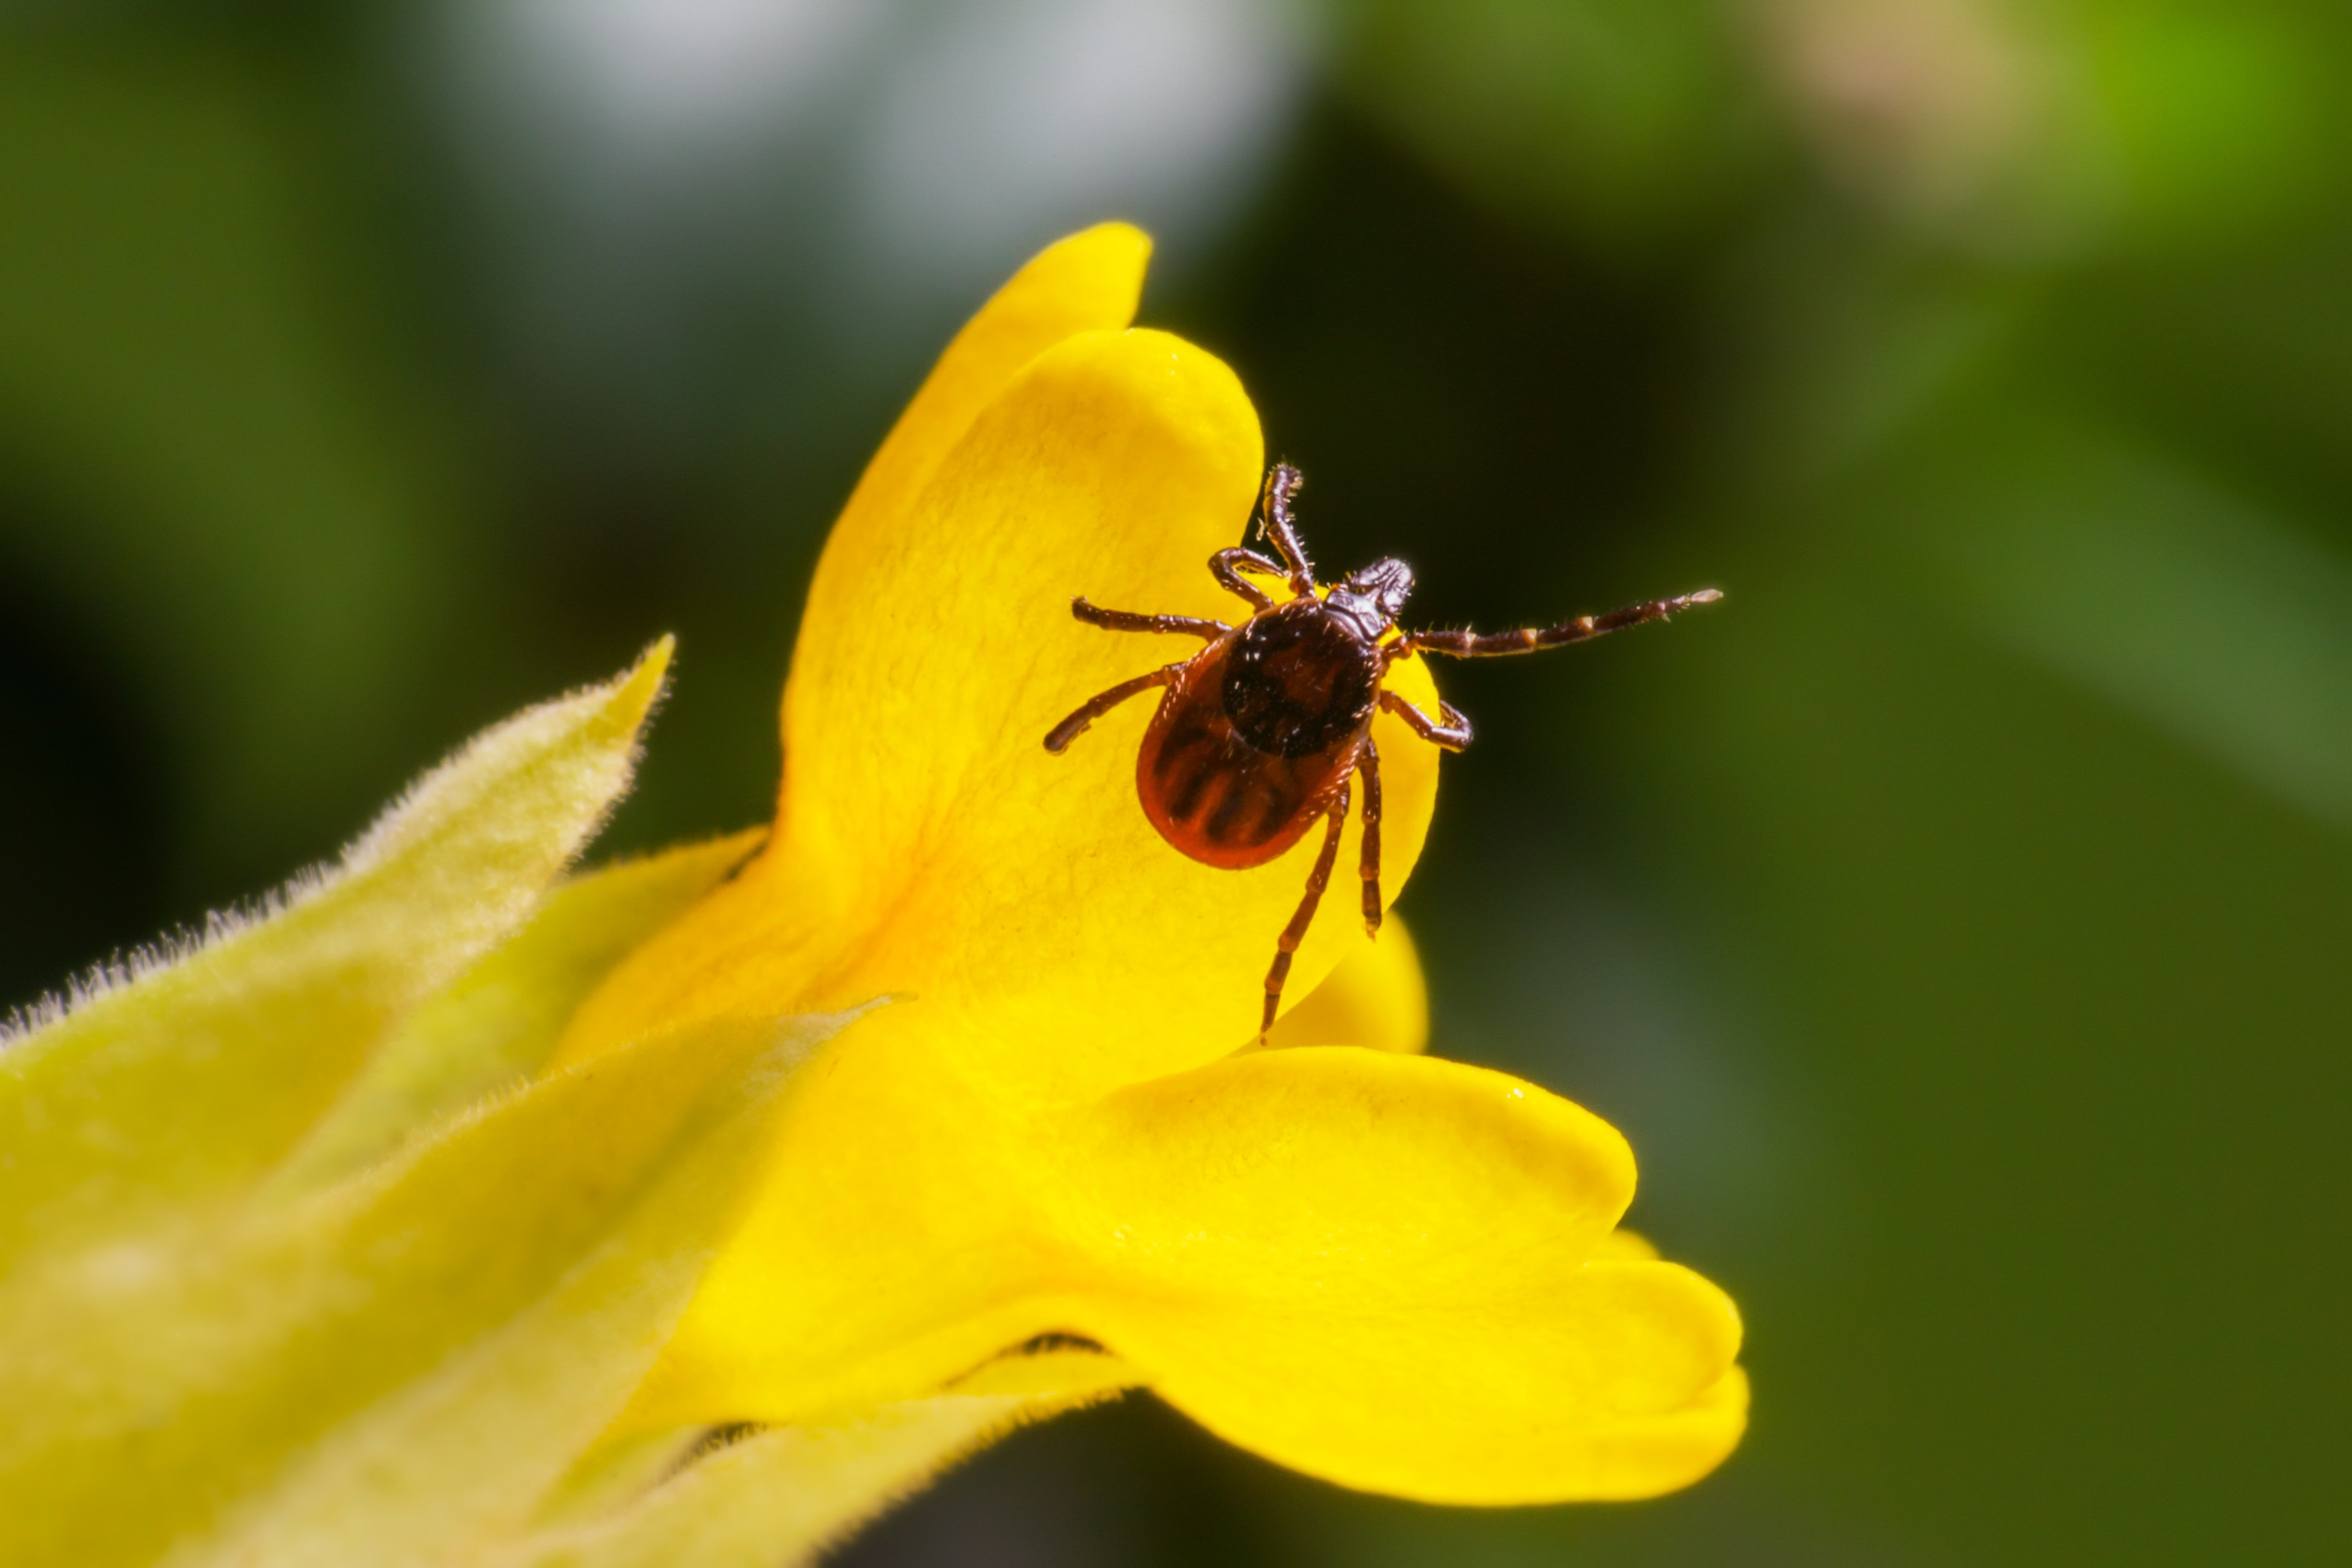 Pictured - A macro photography of insect in yellow flower | Source: Pexels